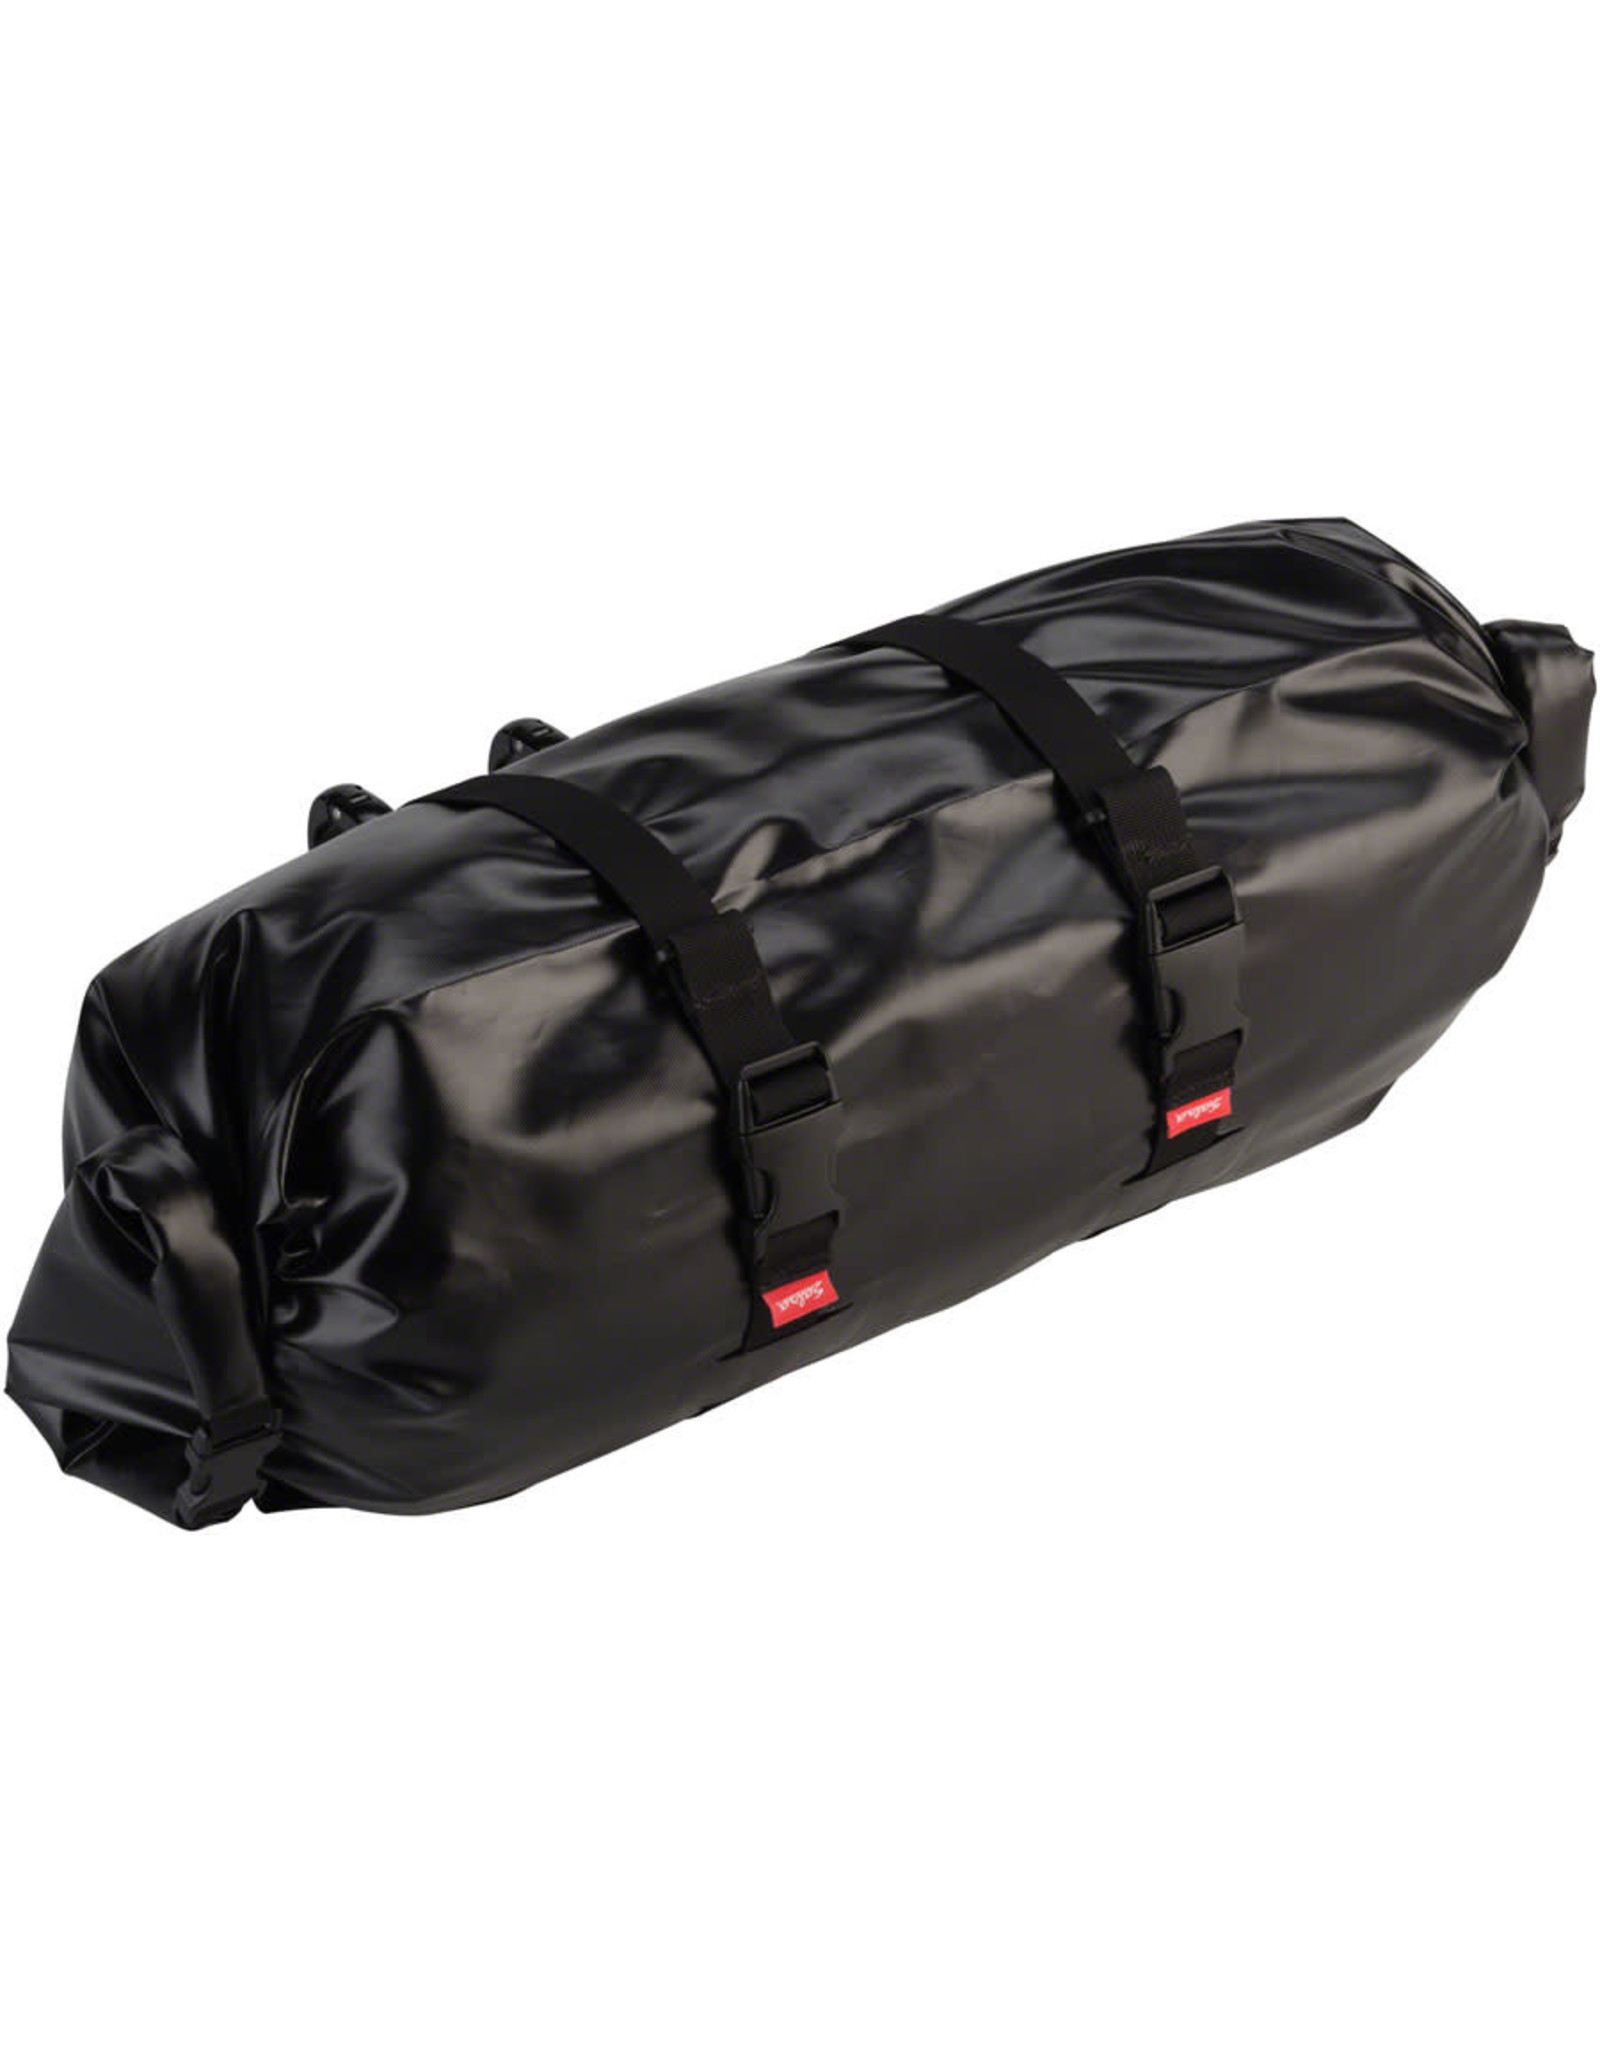 Salsa Cycles Salsa EXP Series Anything Cradle with 15 Liter Dry Bag and Straps